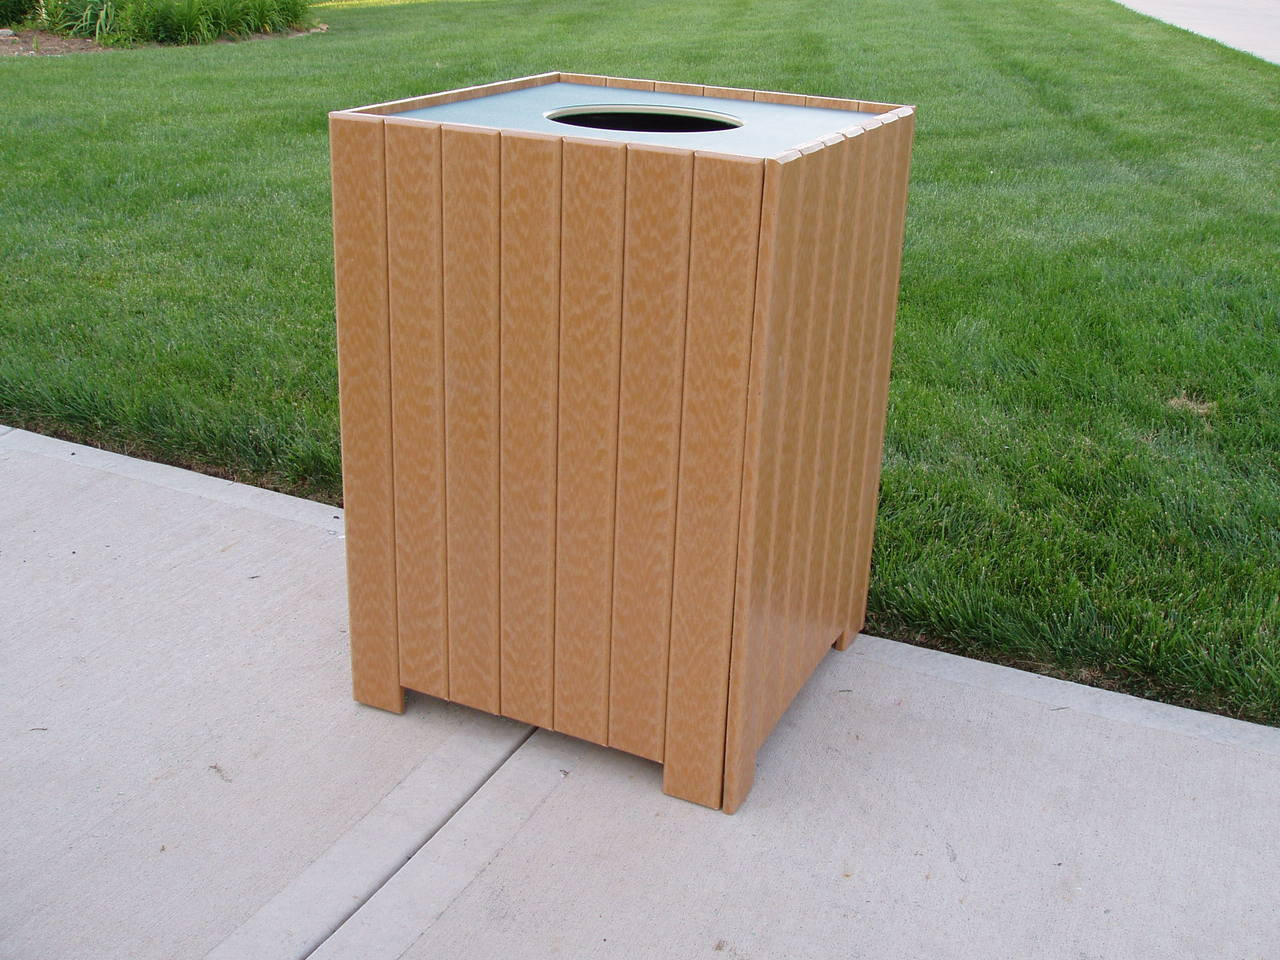 Standard Square Receptacle - 32 gallons